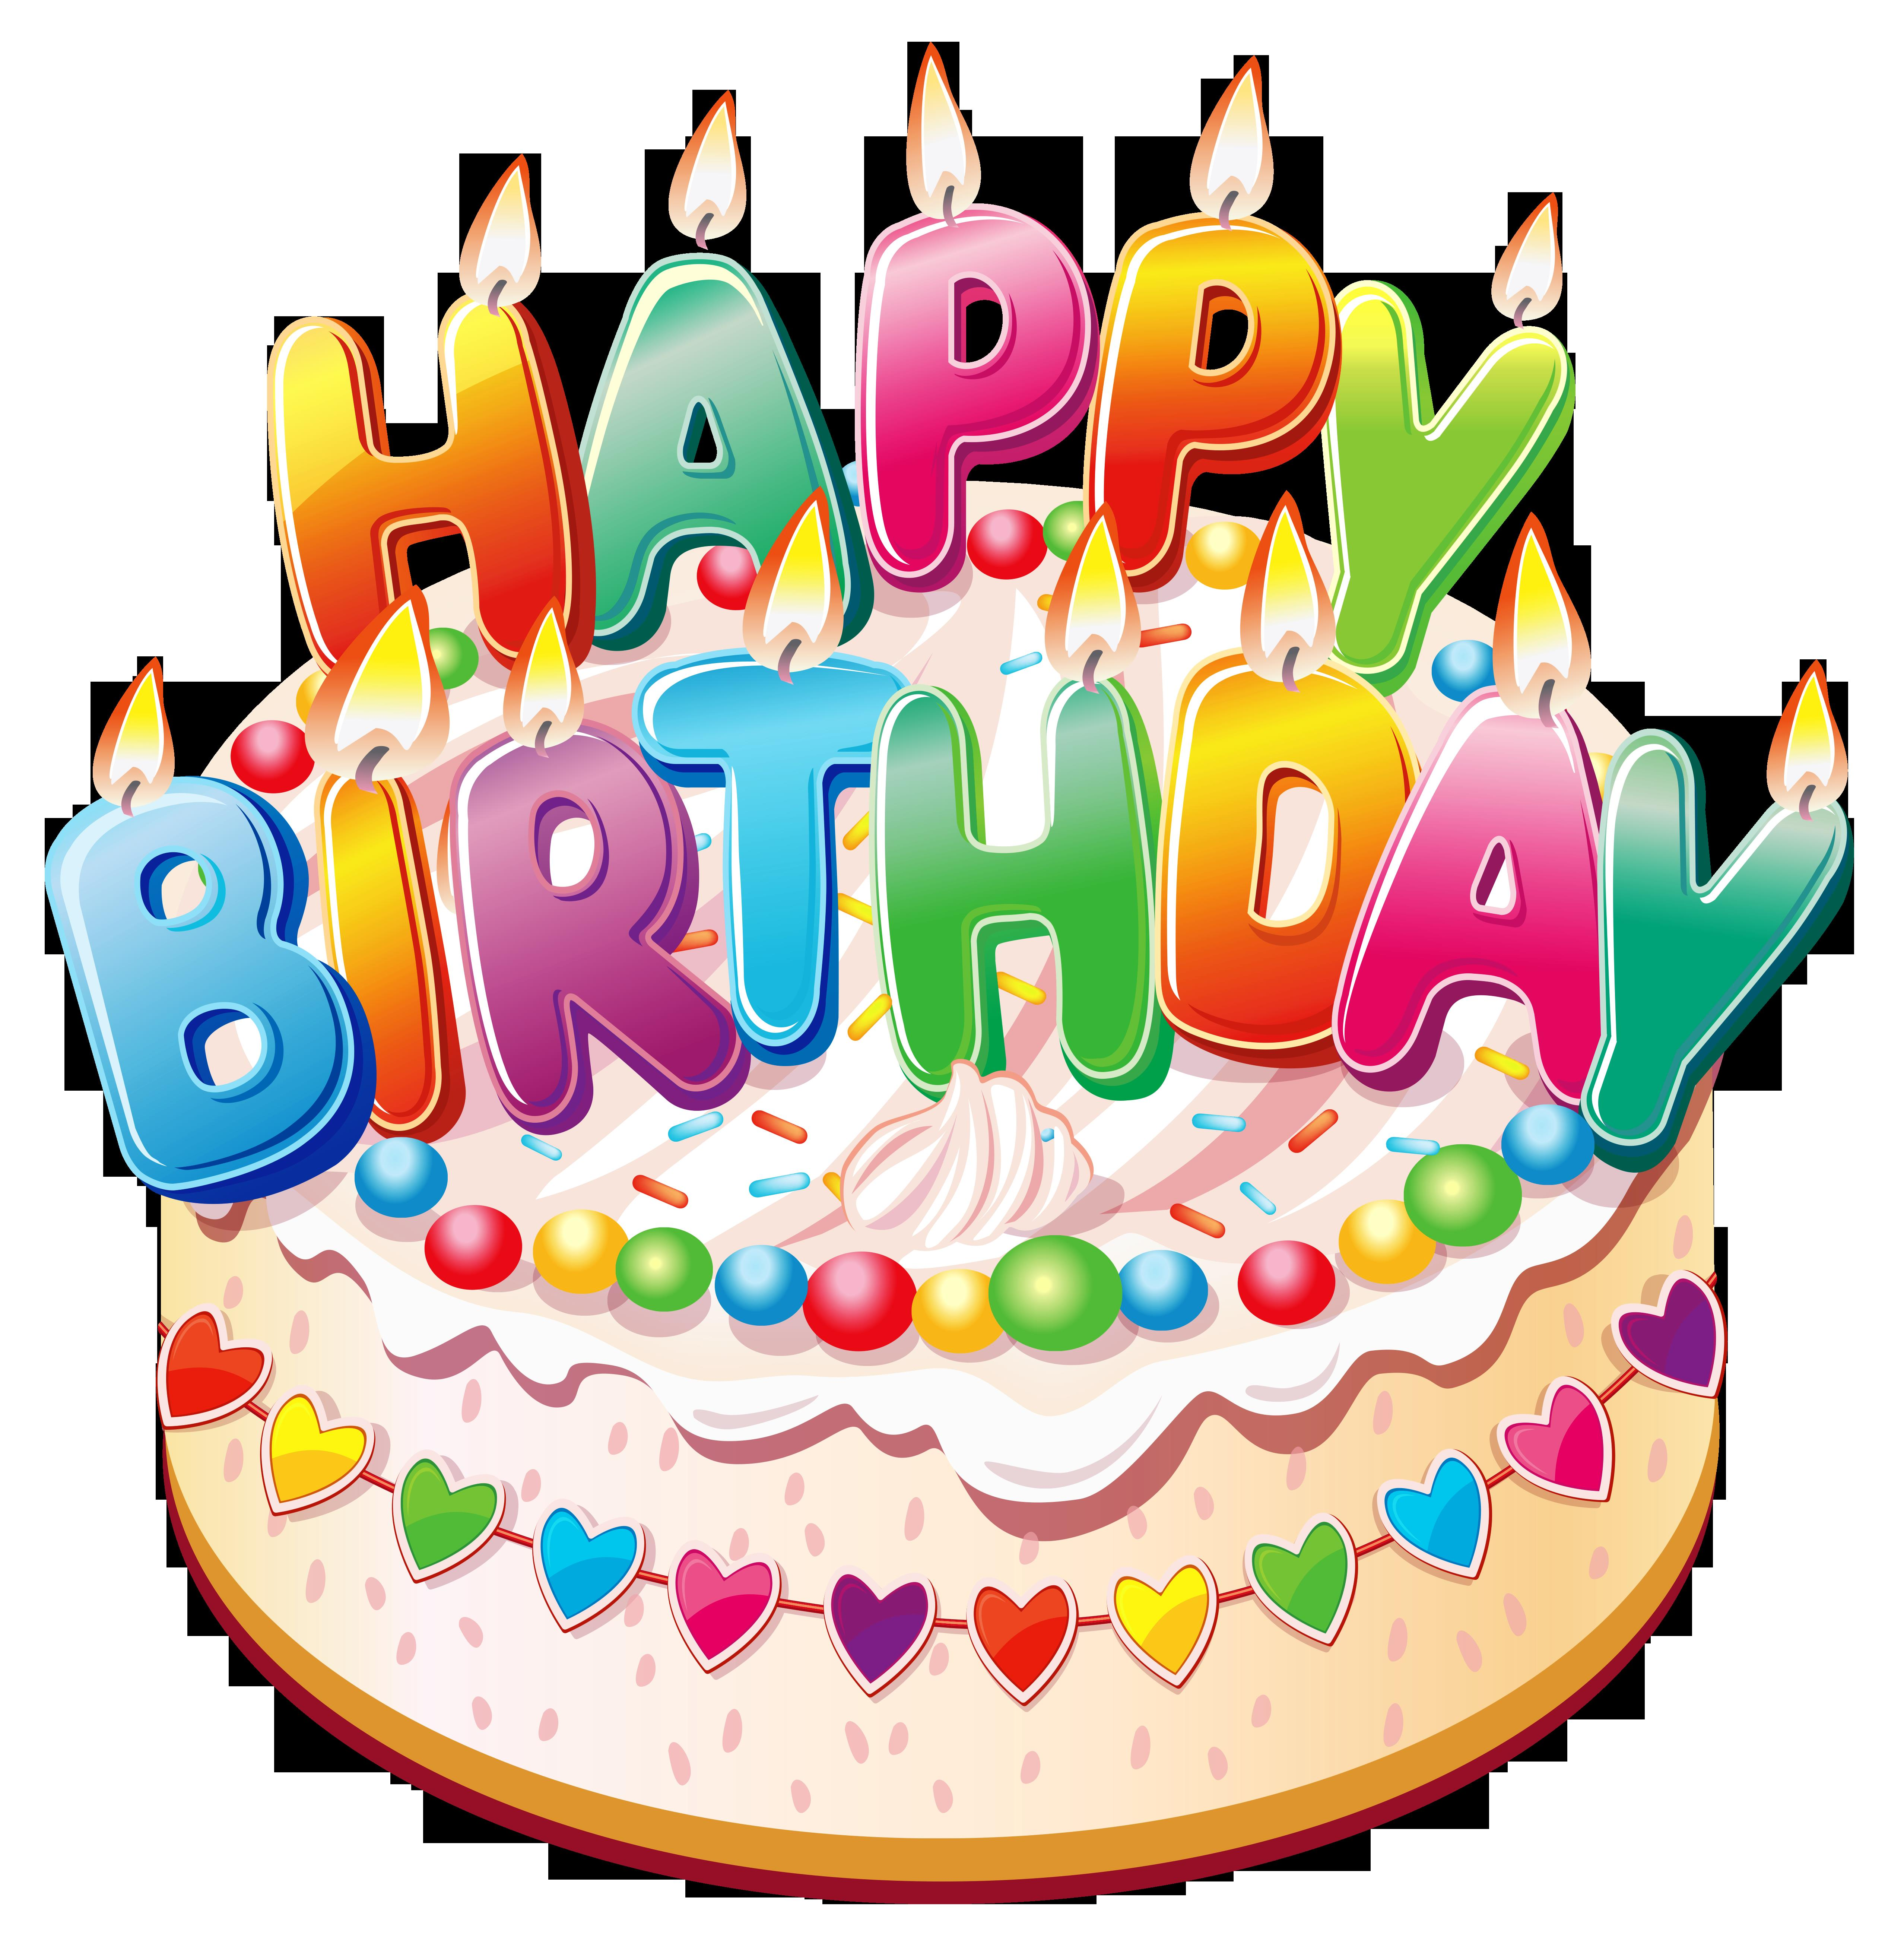 free birthday downloads cliparts ; artistic-cakes-clipart-5